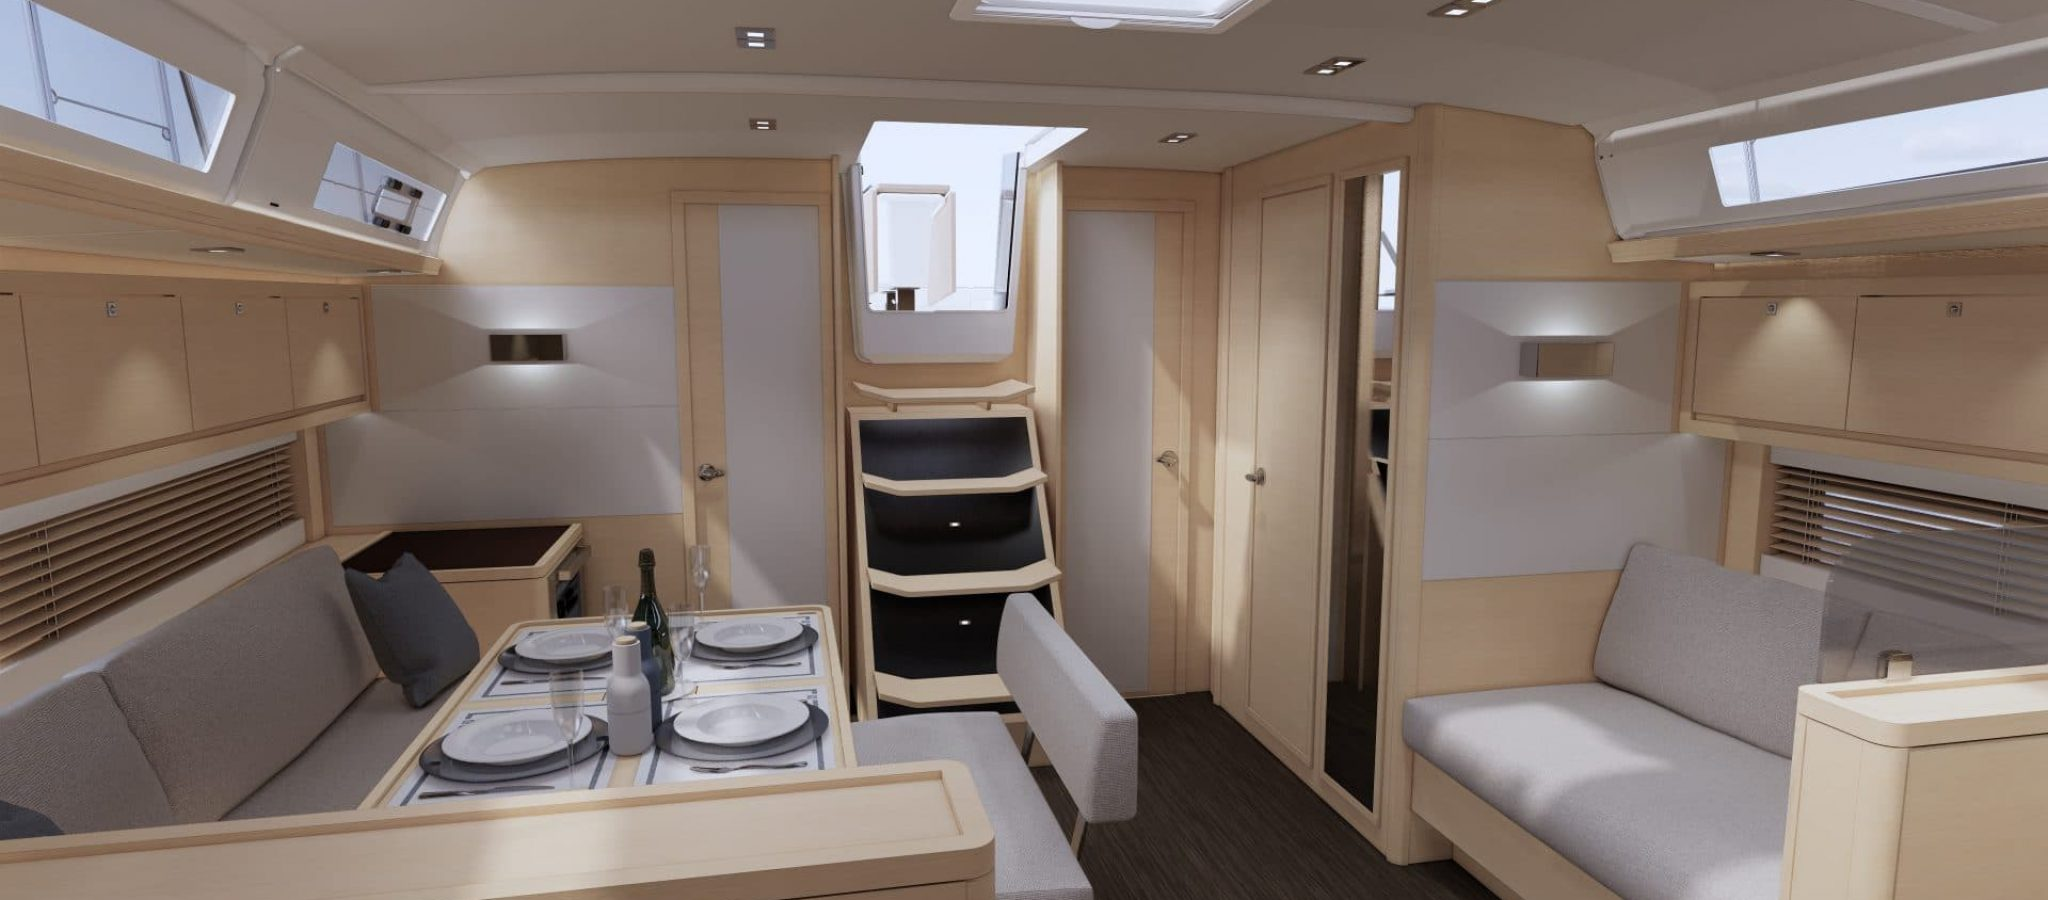 D470_FWD GALLEY_EUROPE-06